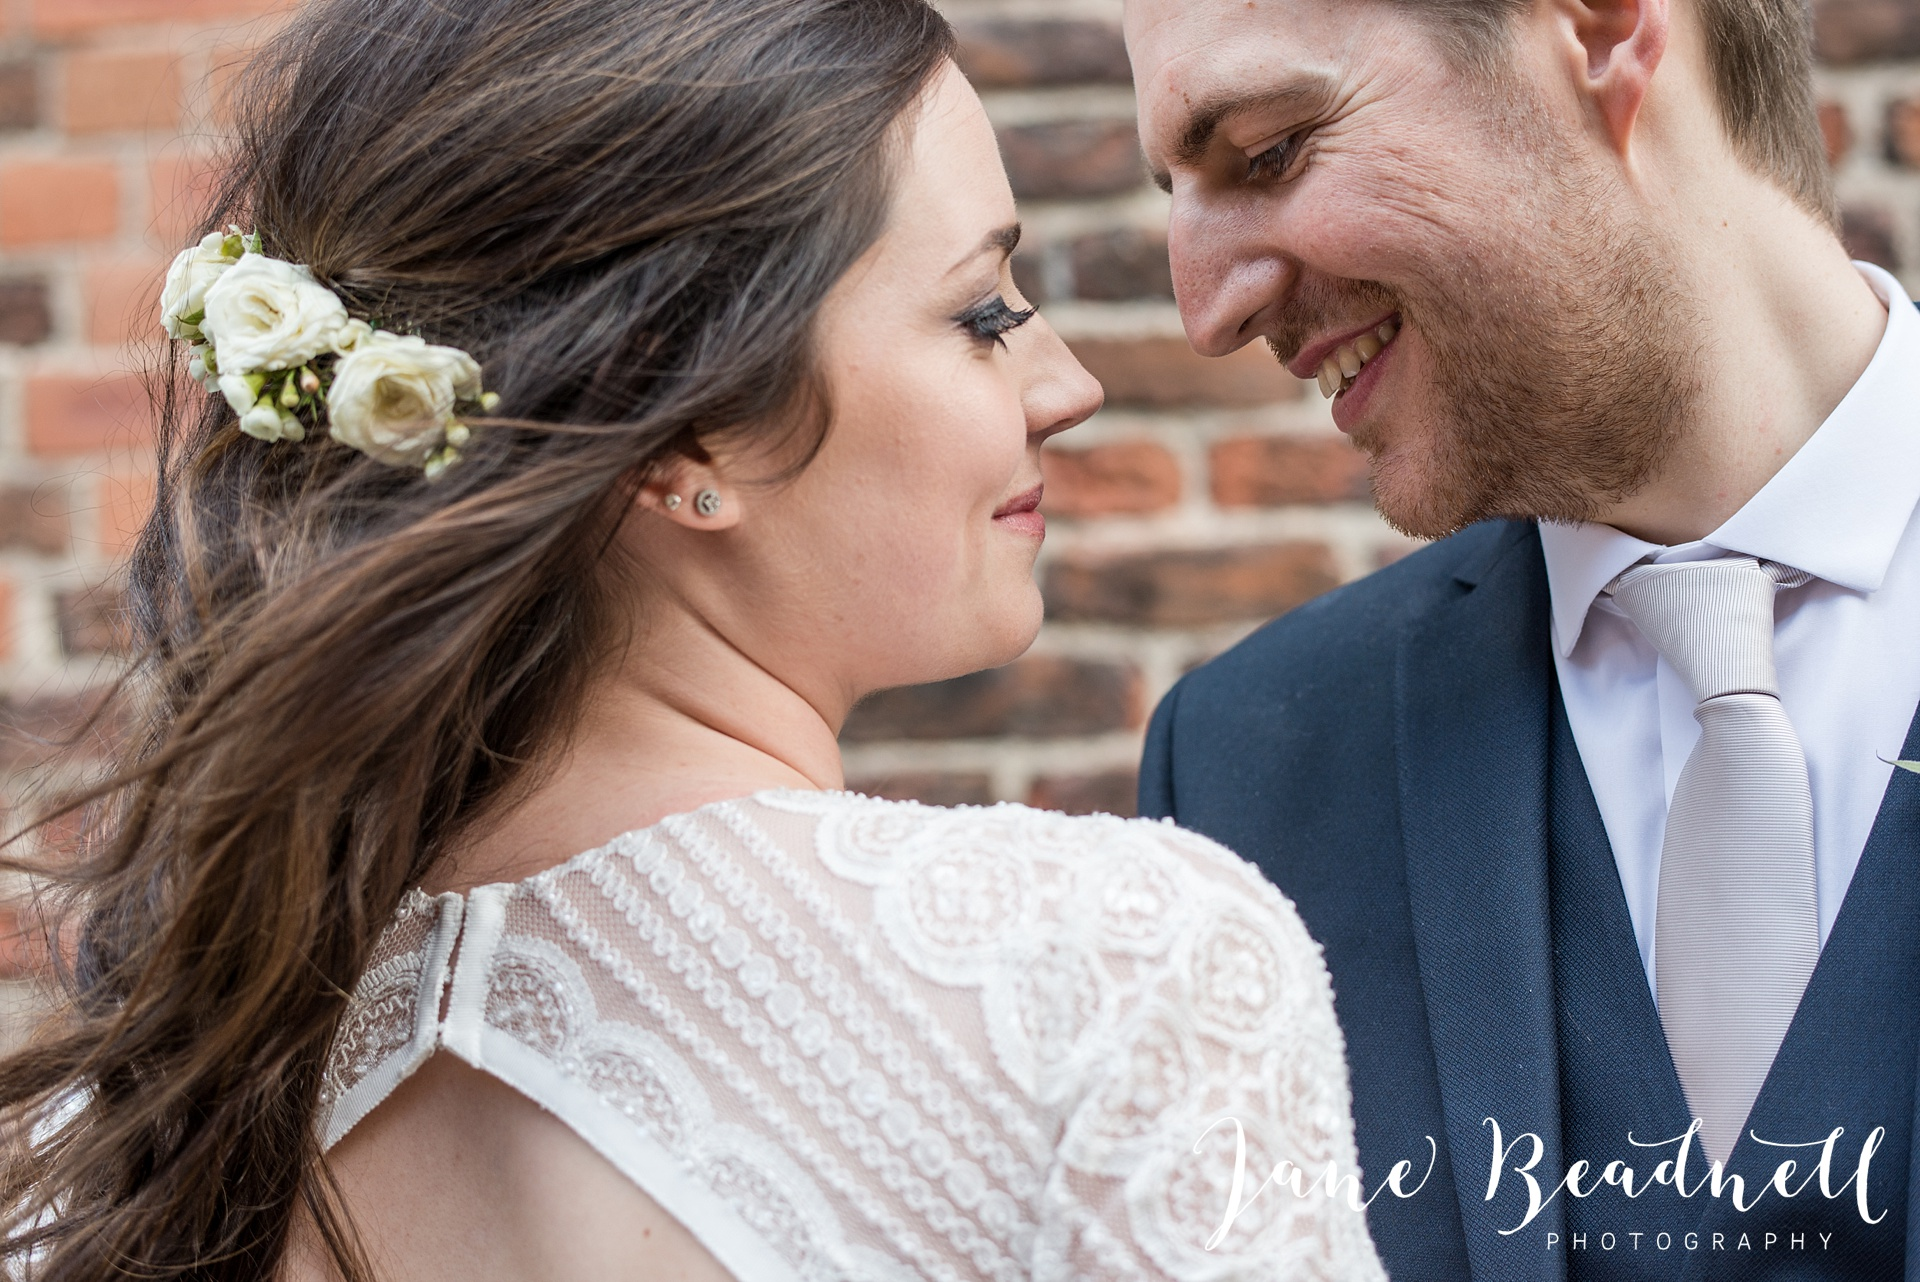 Wedding photography Cross Keys Leeds Wedding Jane Beadnell Photography_0093